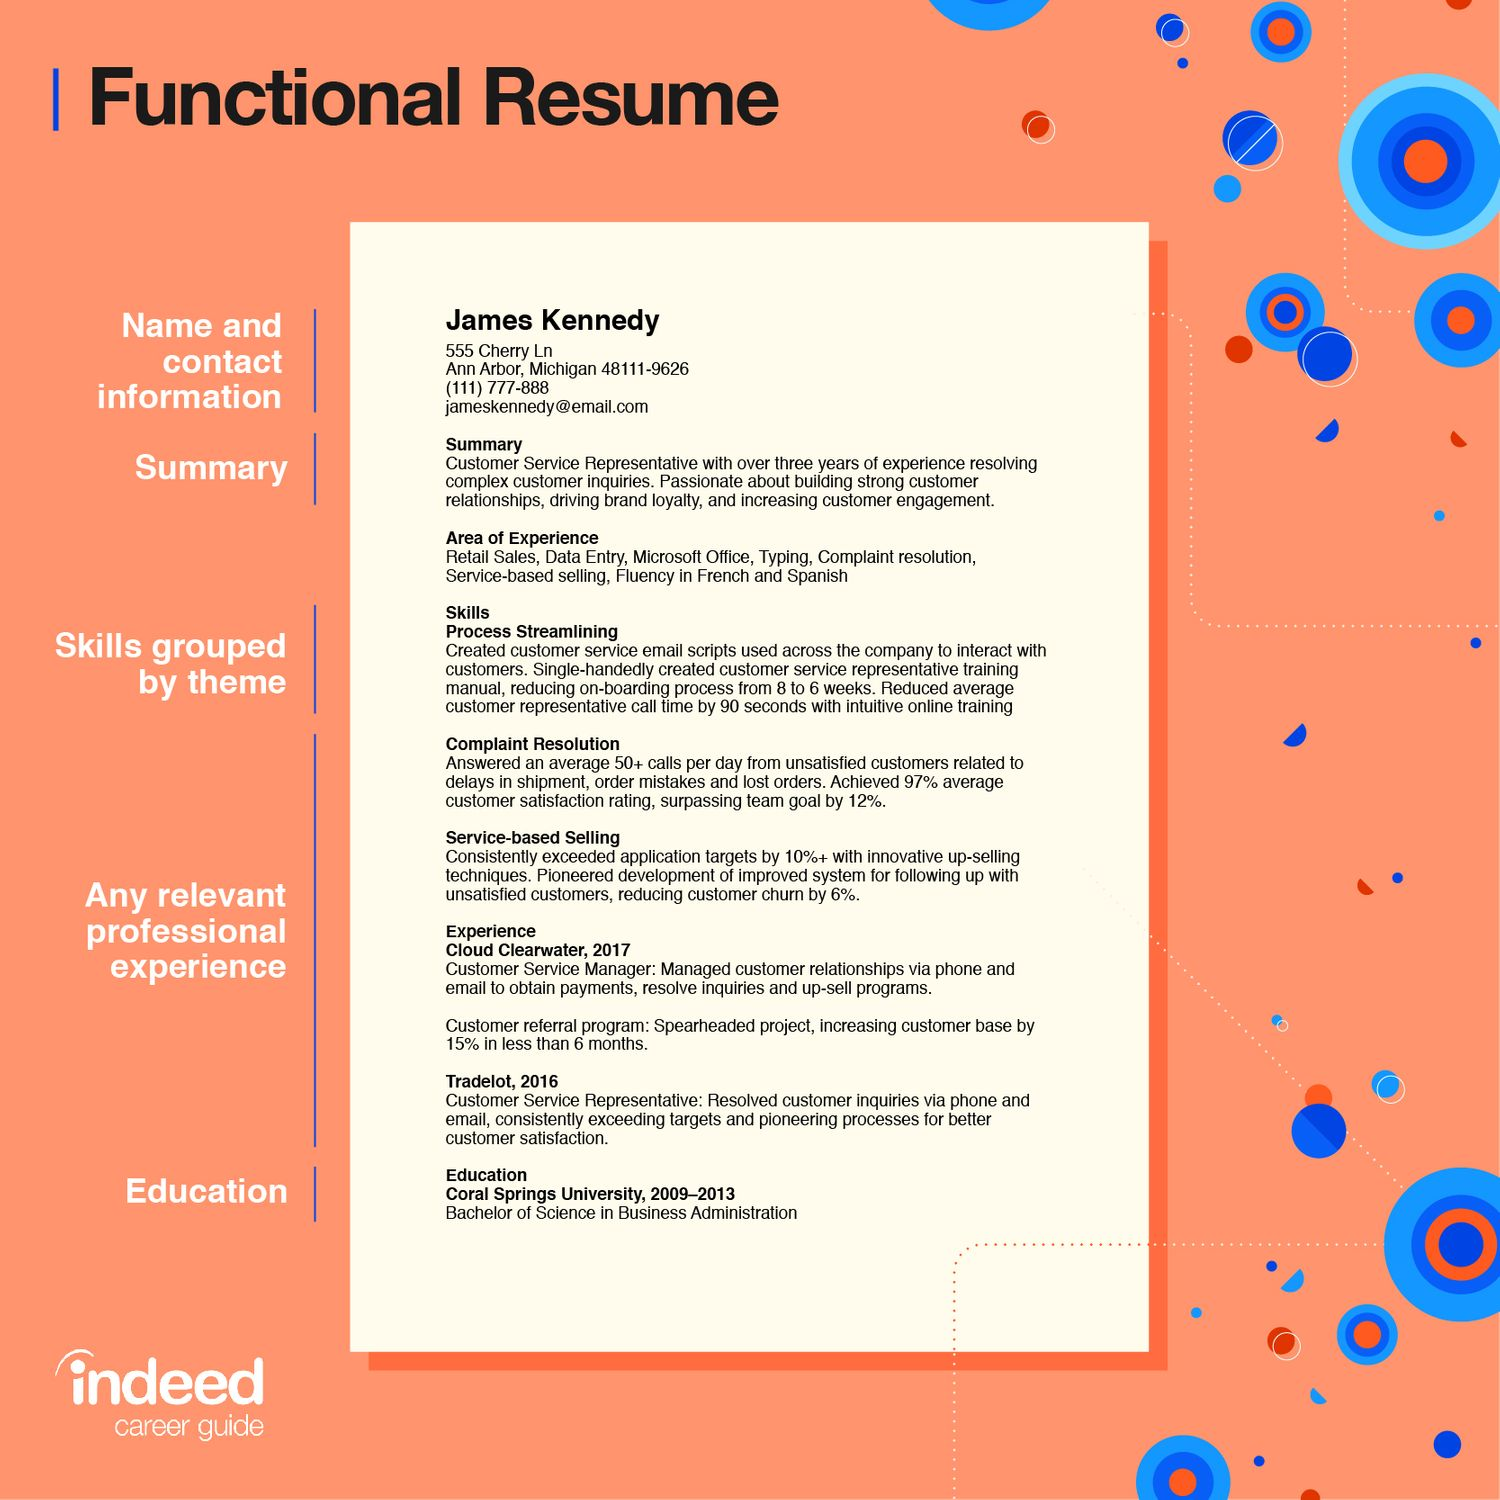 best skills to include on resume with examples indeed and abilities for resized Resume Skills And Abilities For A Resume Examples